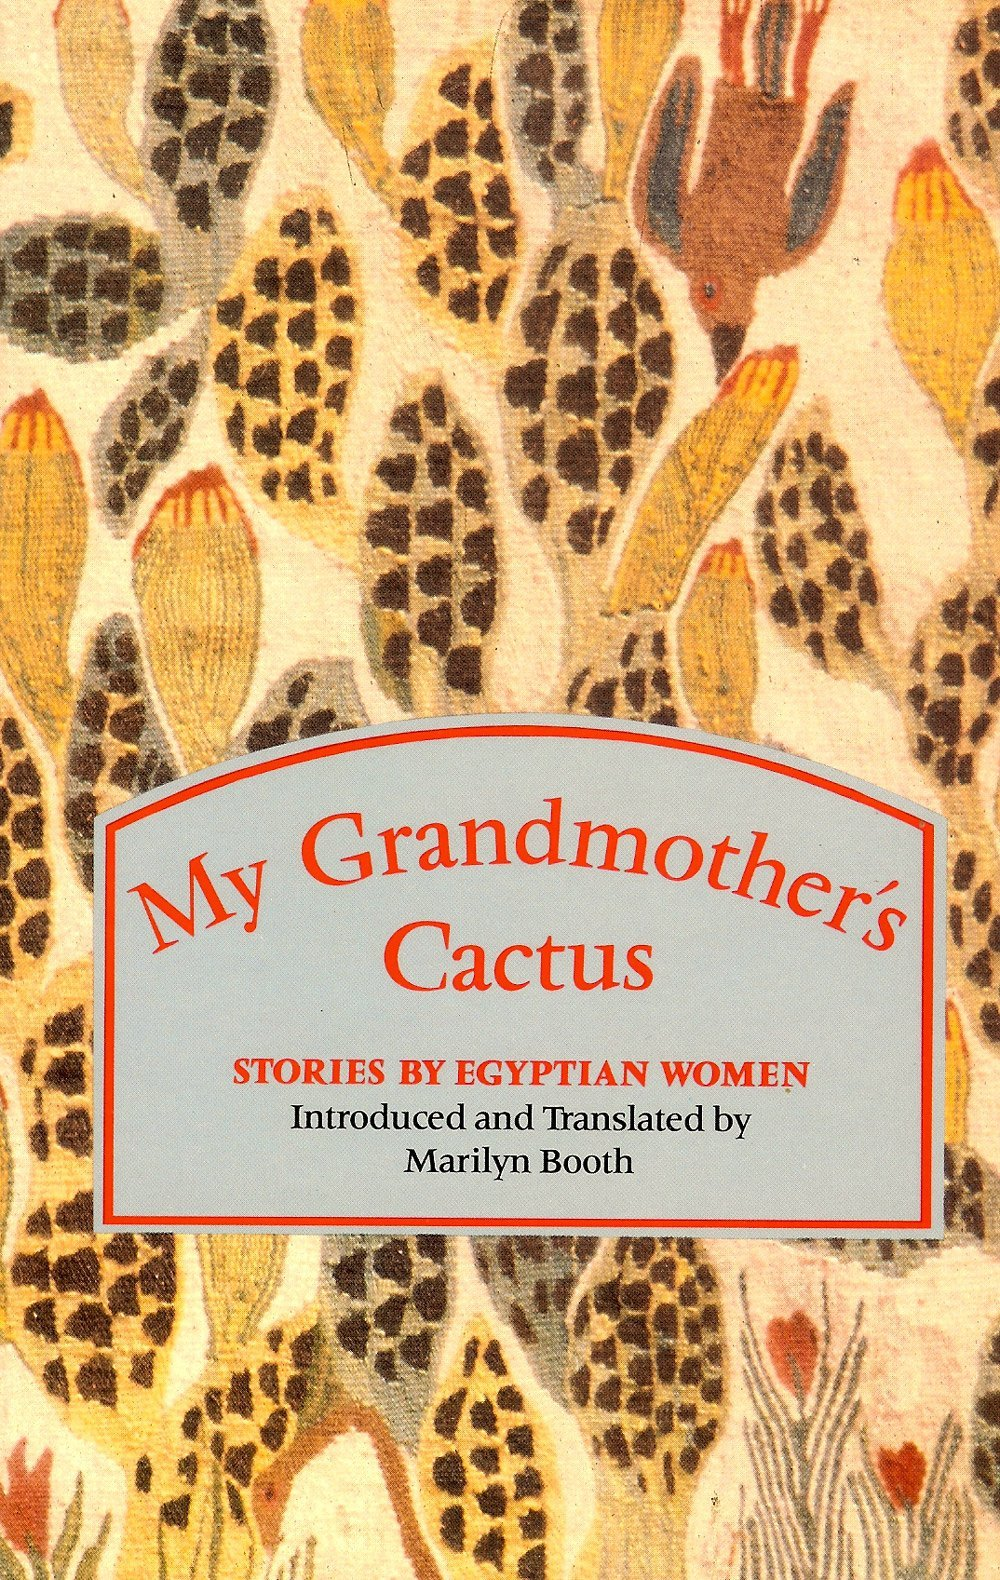 My Grandmothers Cactus: Stories  by  Egyptian Women by Marilyn Booth